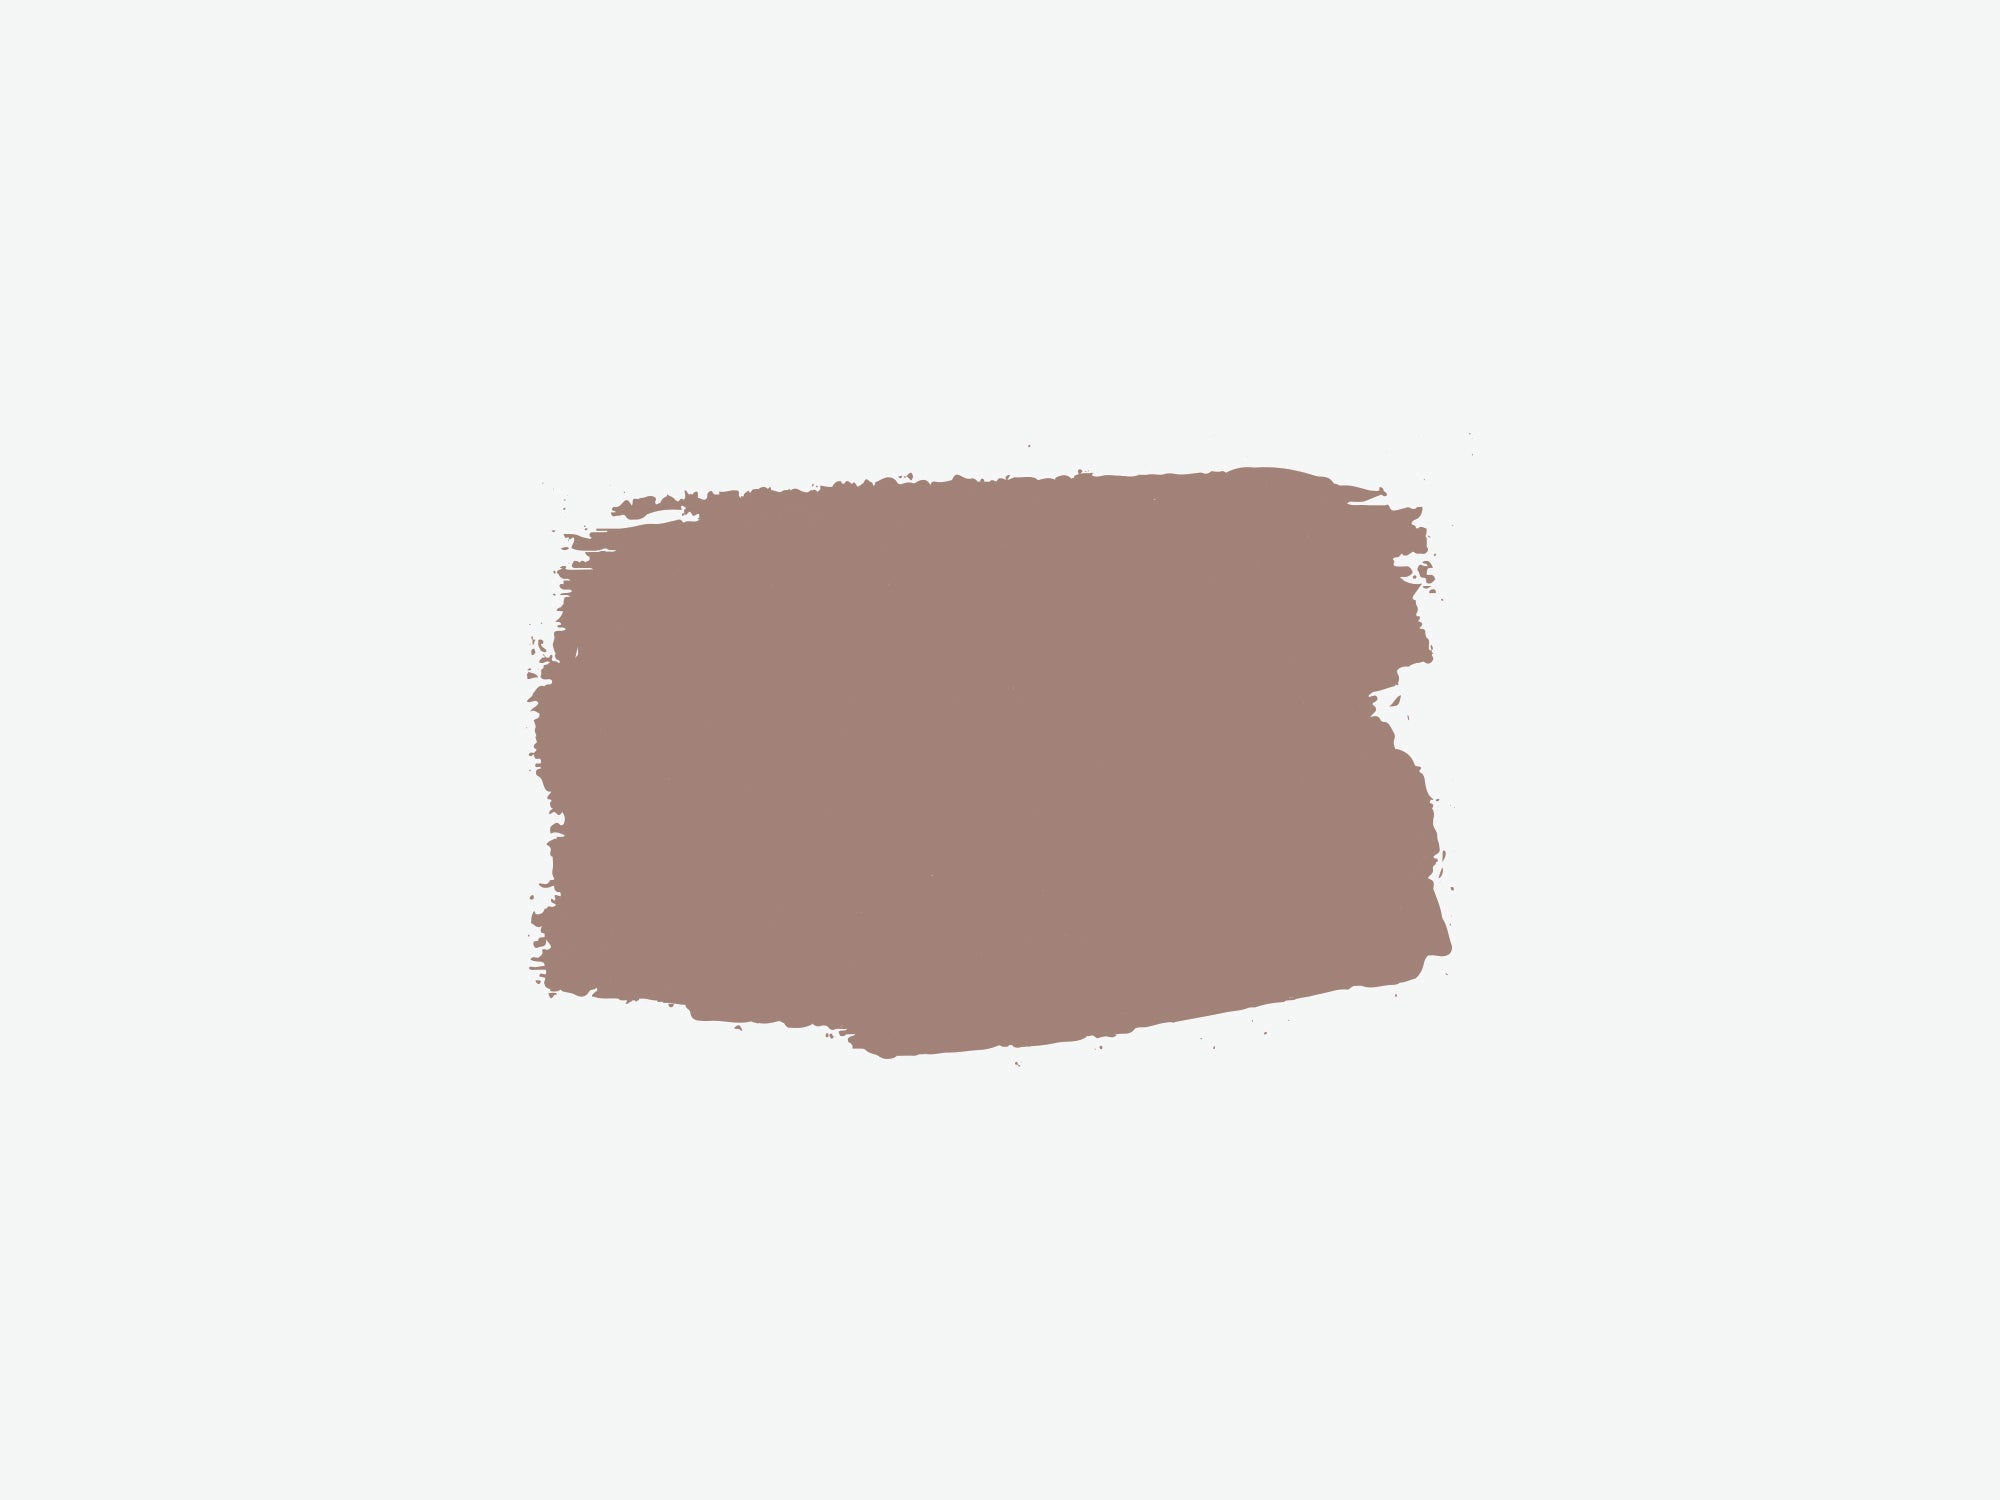 paintswatch_powdered clay